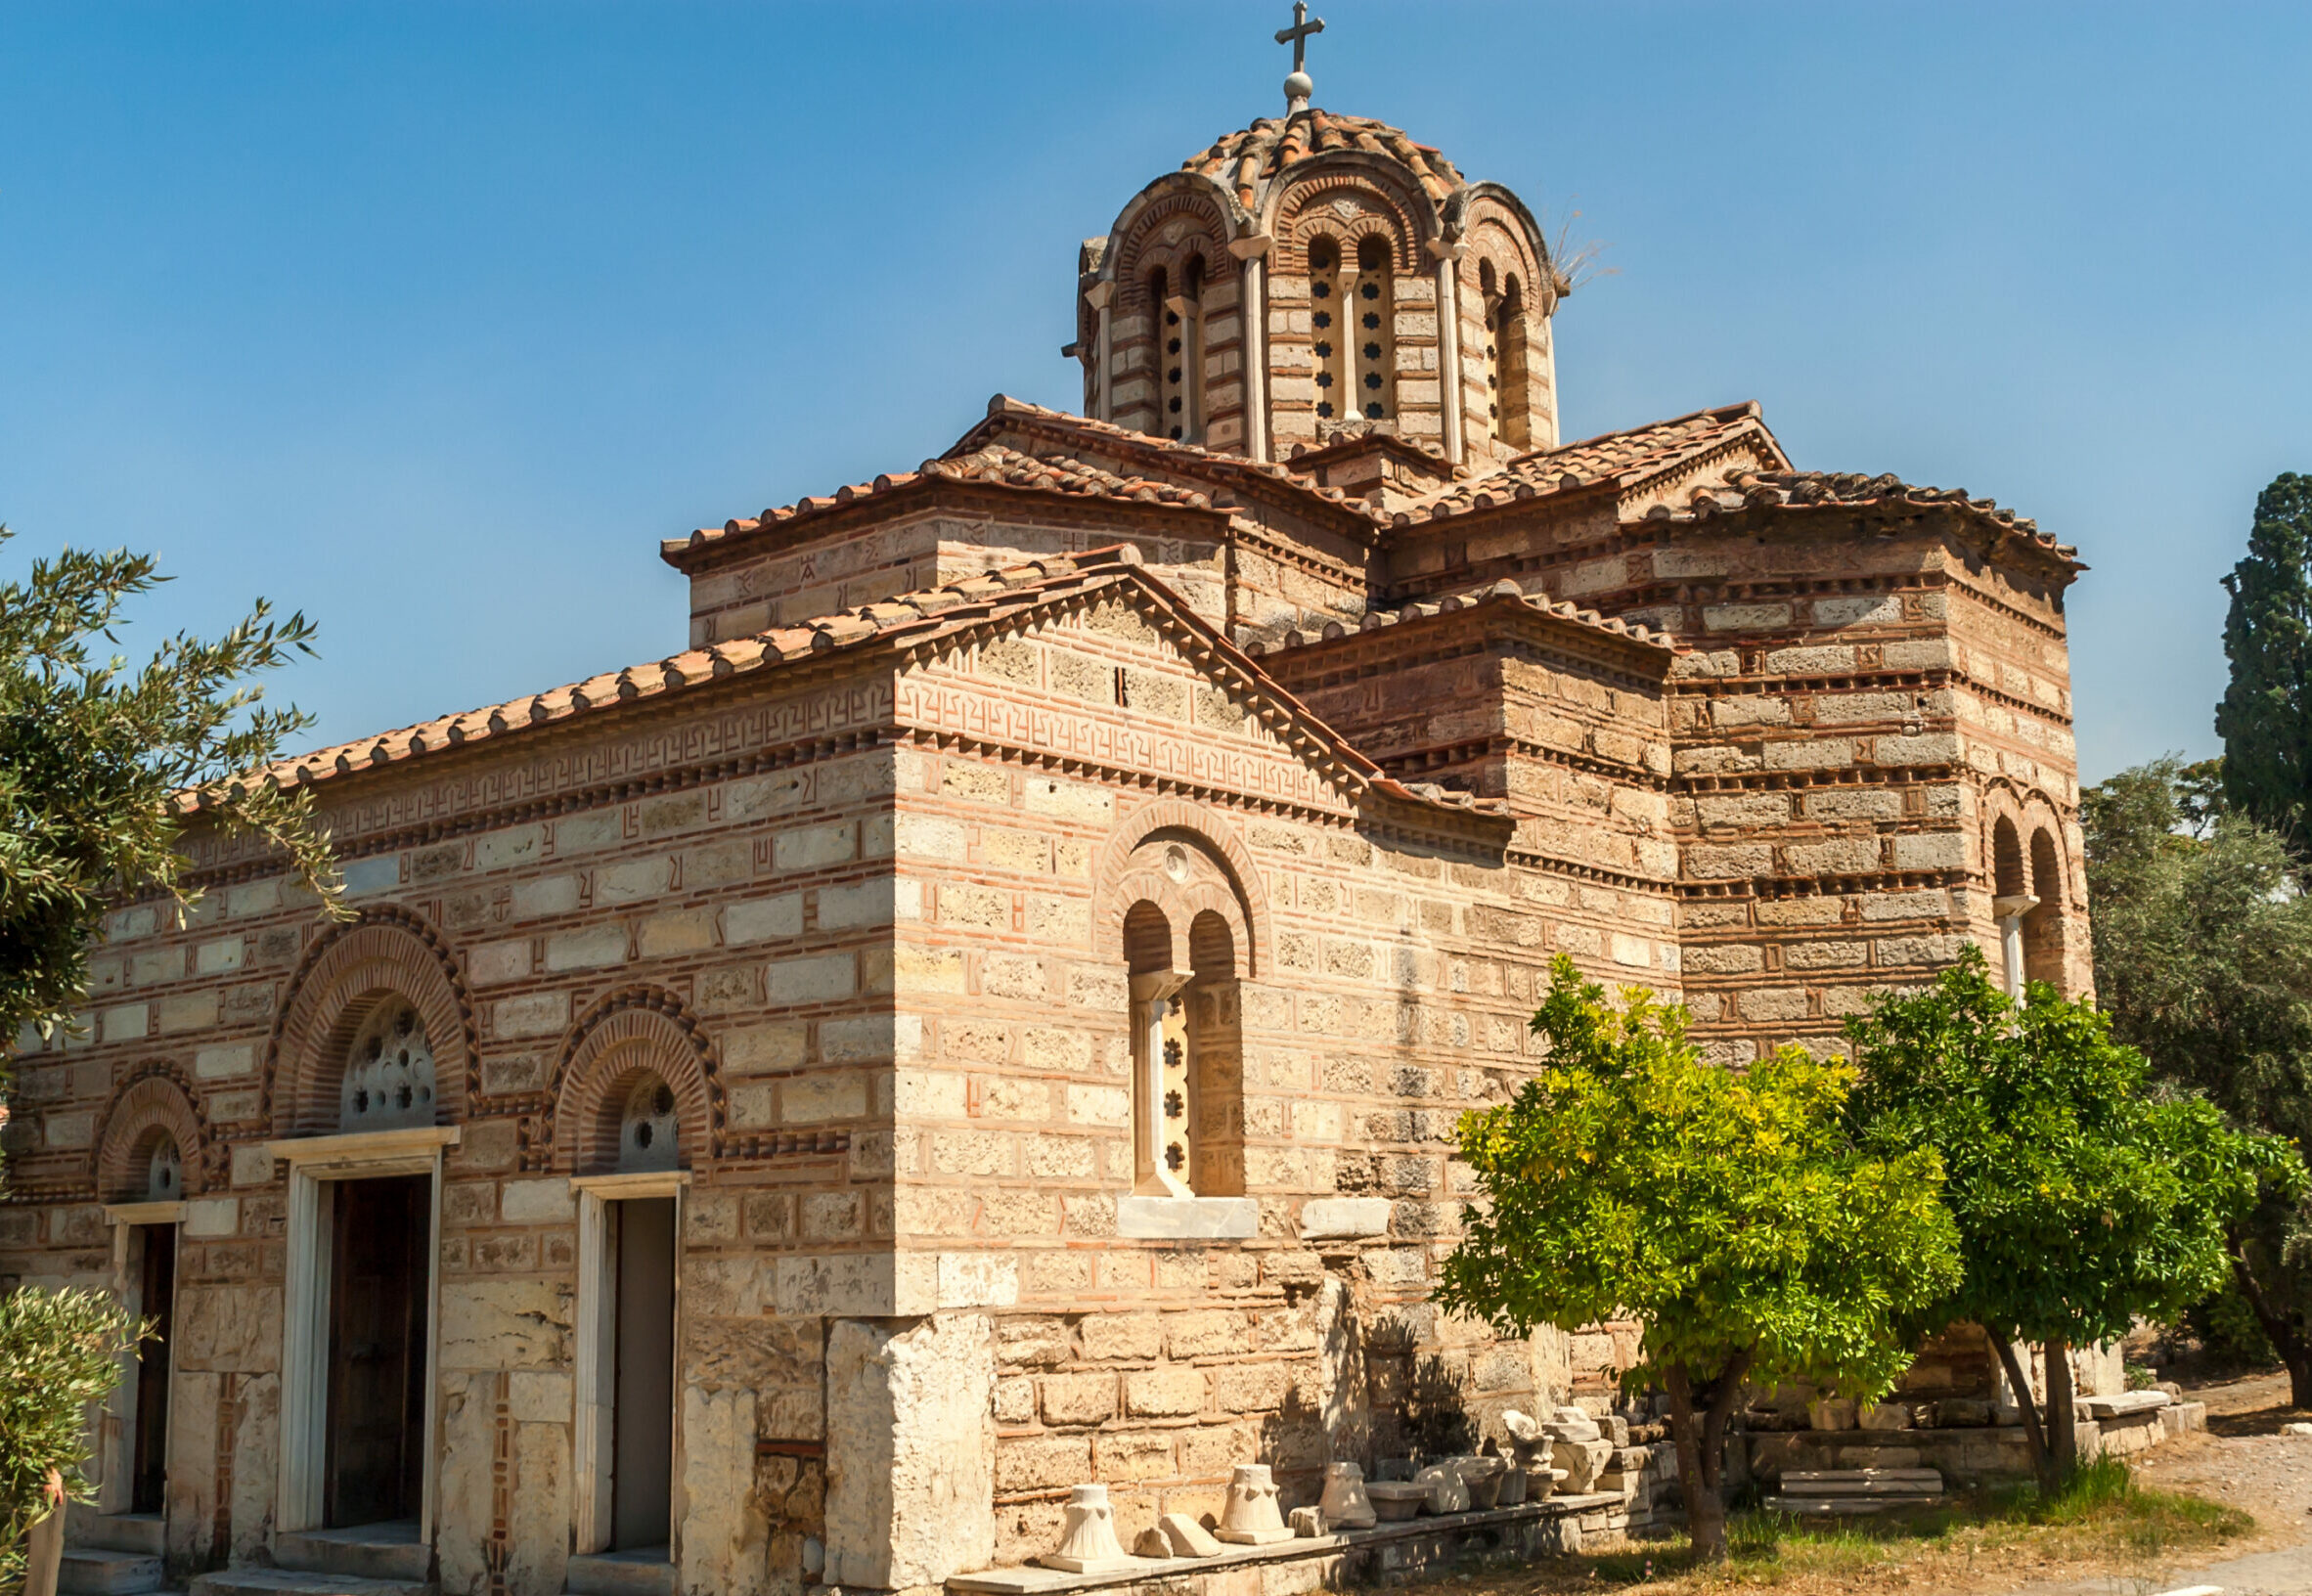 Athens: The first bell to ring after 400 years of subjugation